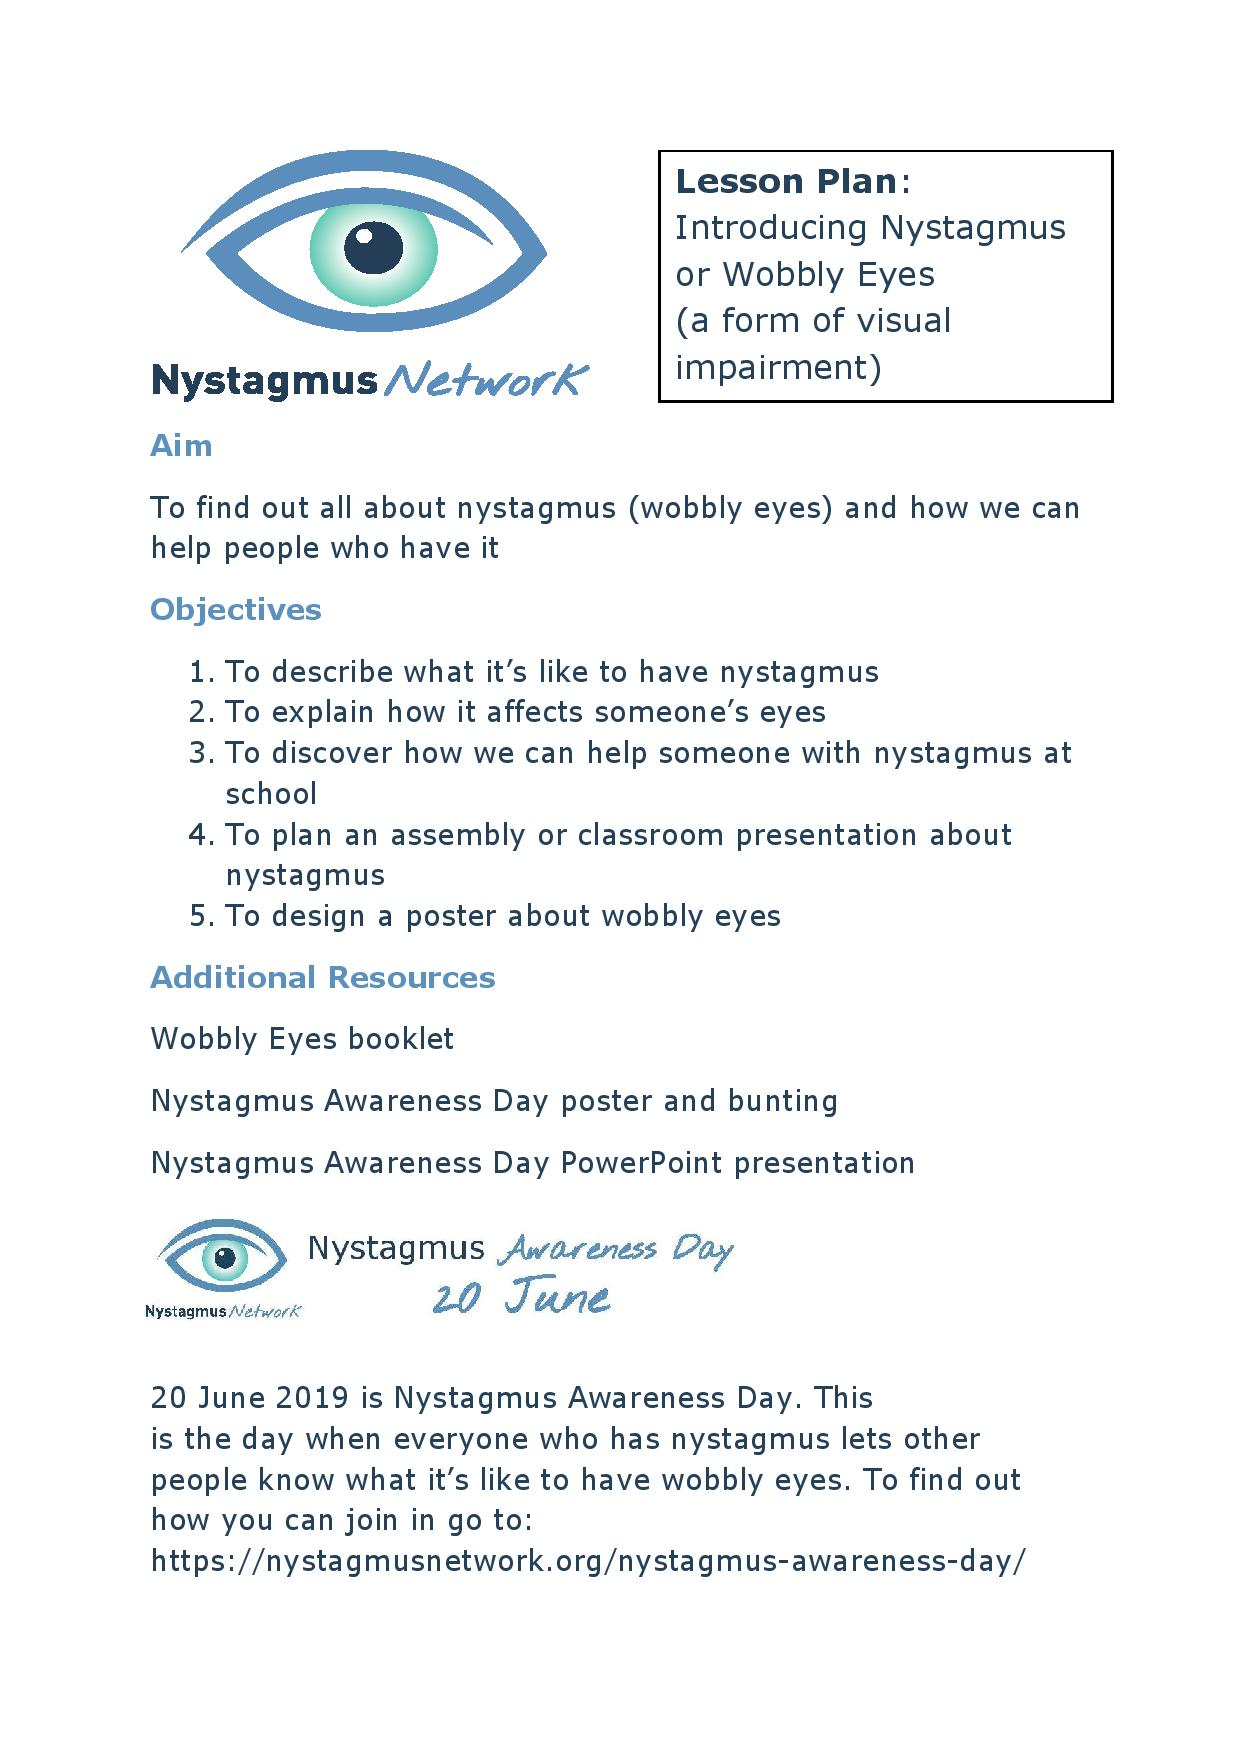 A lesson in nystagmus